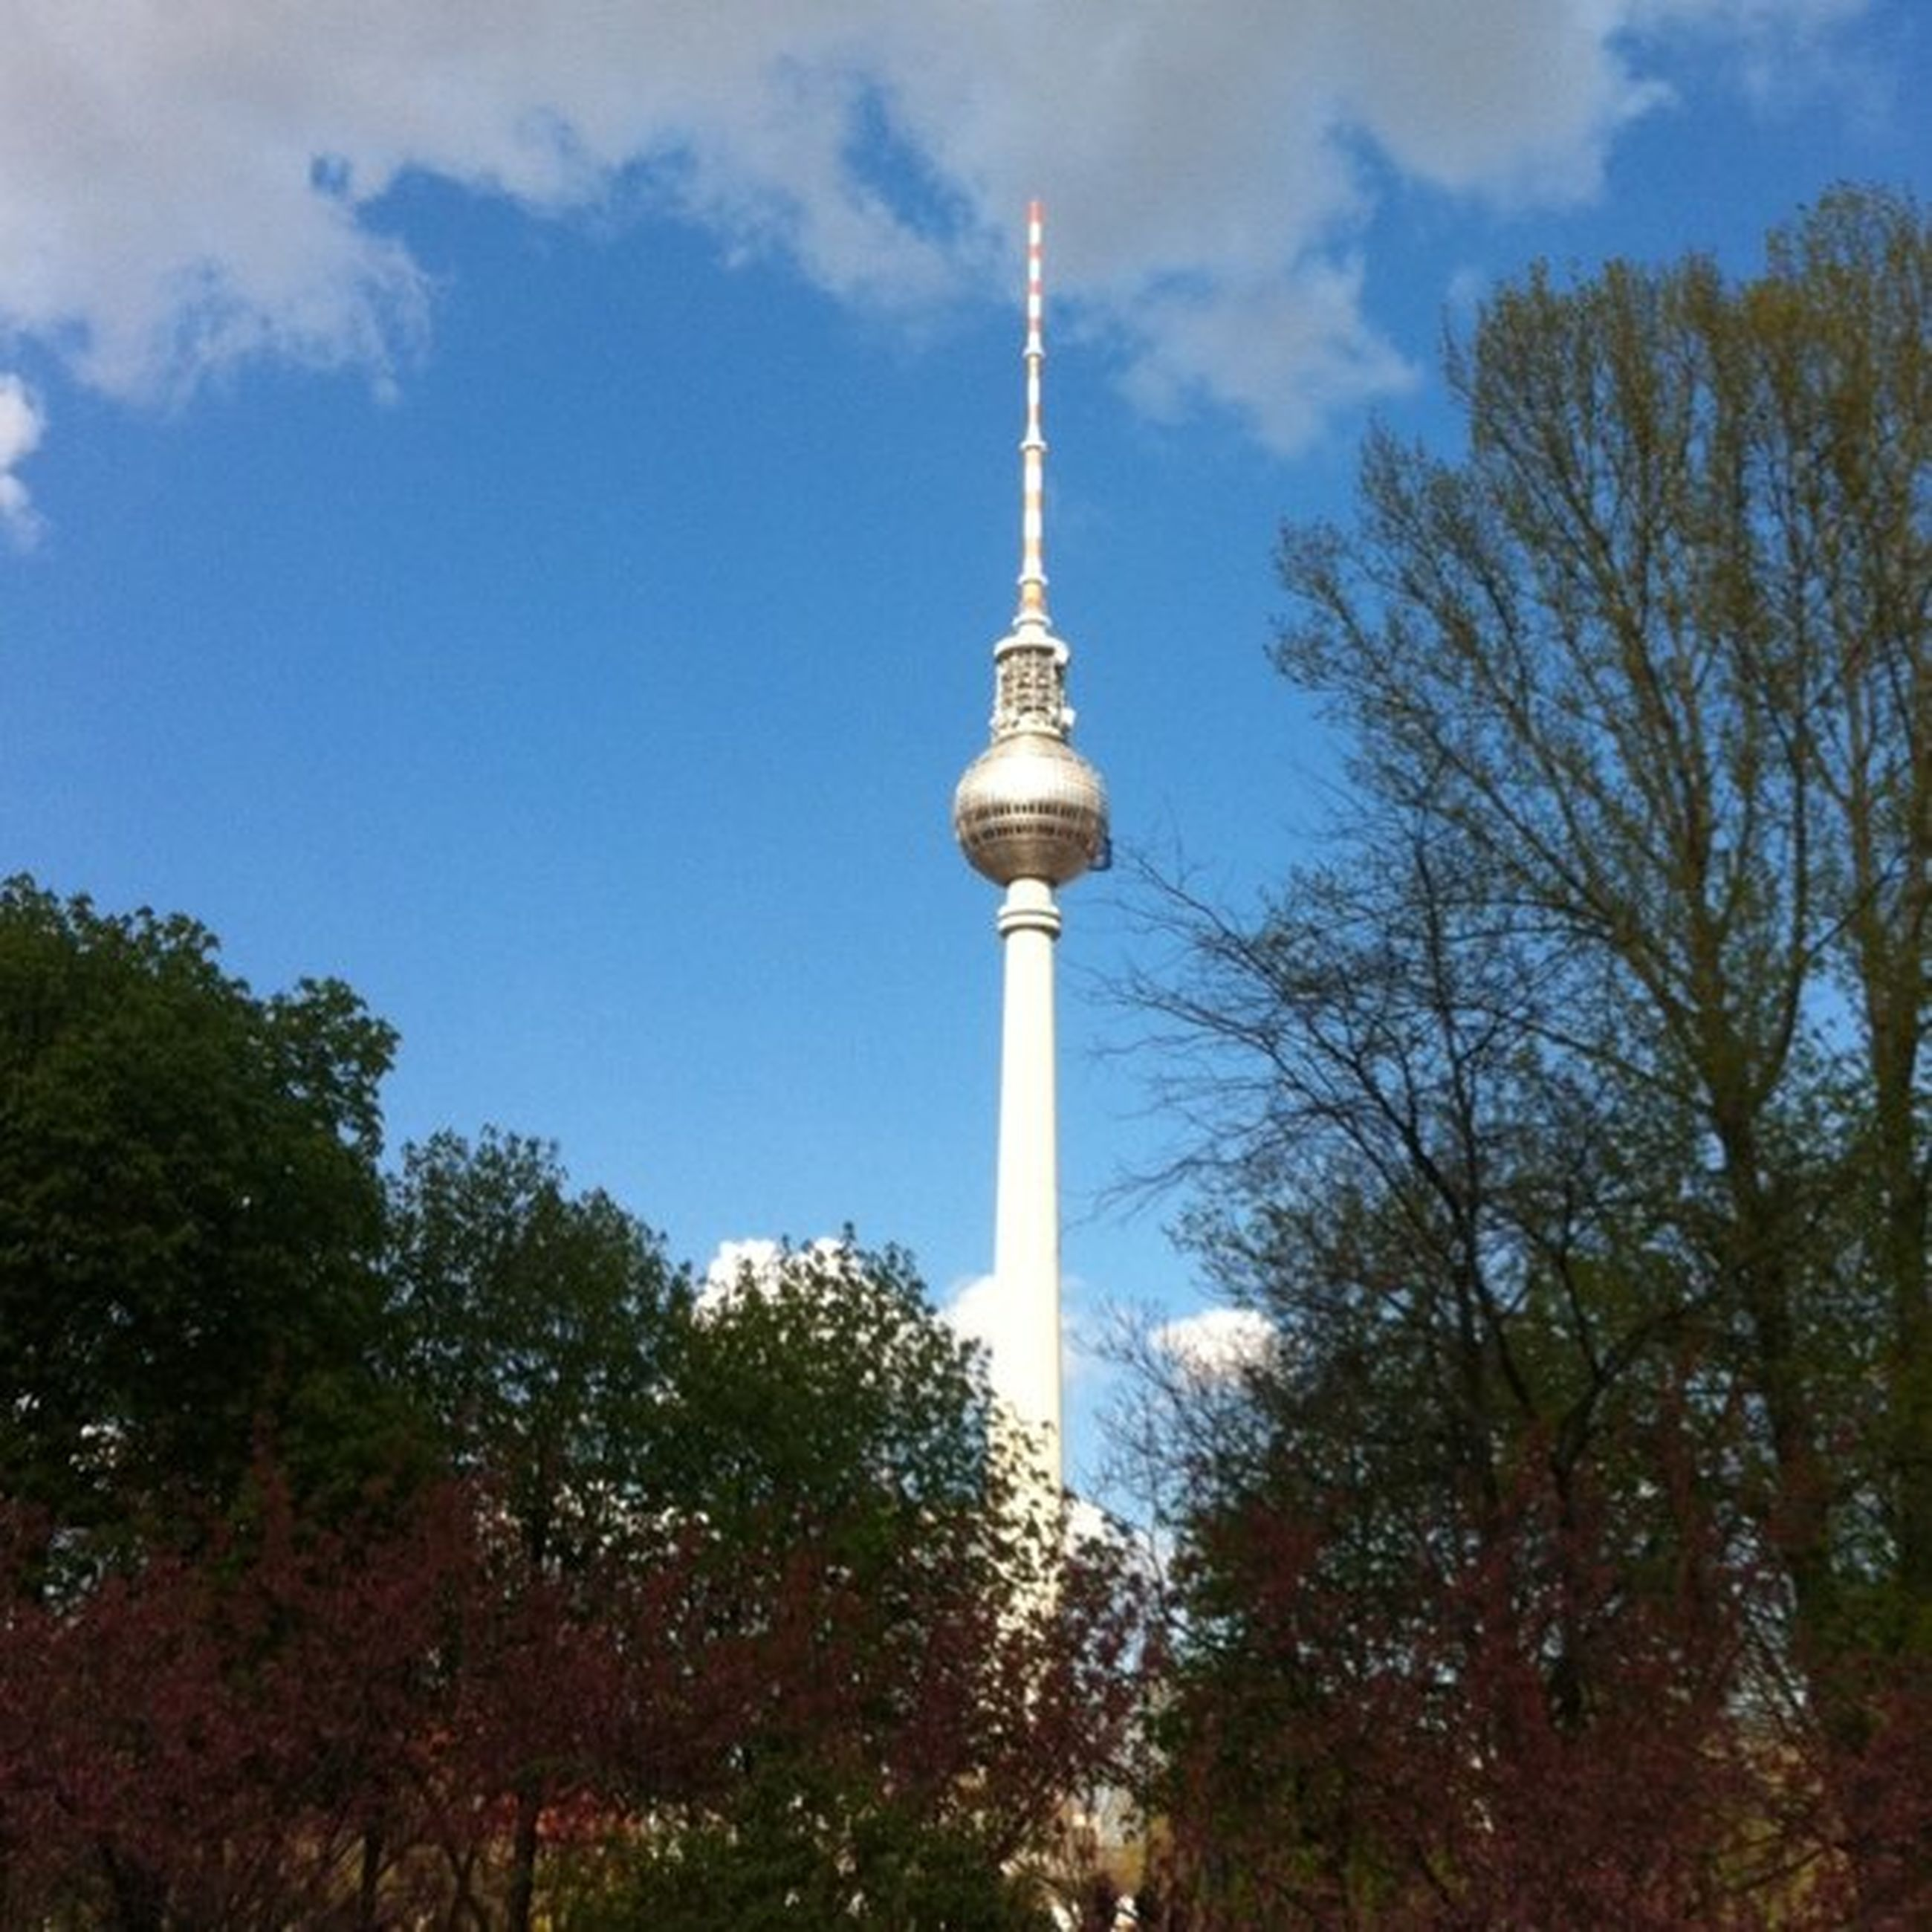 communications tower, tower, tall - high, architecture, built structure, low angle view, fernsehturm, building exterior, television tower, spire, communication, sky, tree, travel destinations, culture, famous place, tourism, sphere, capital cities, international landmark